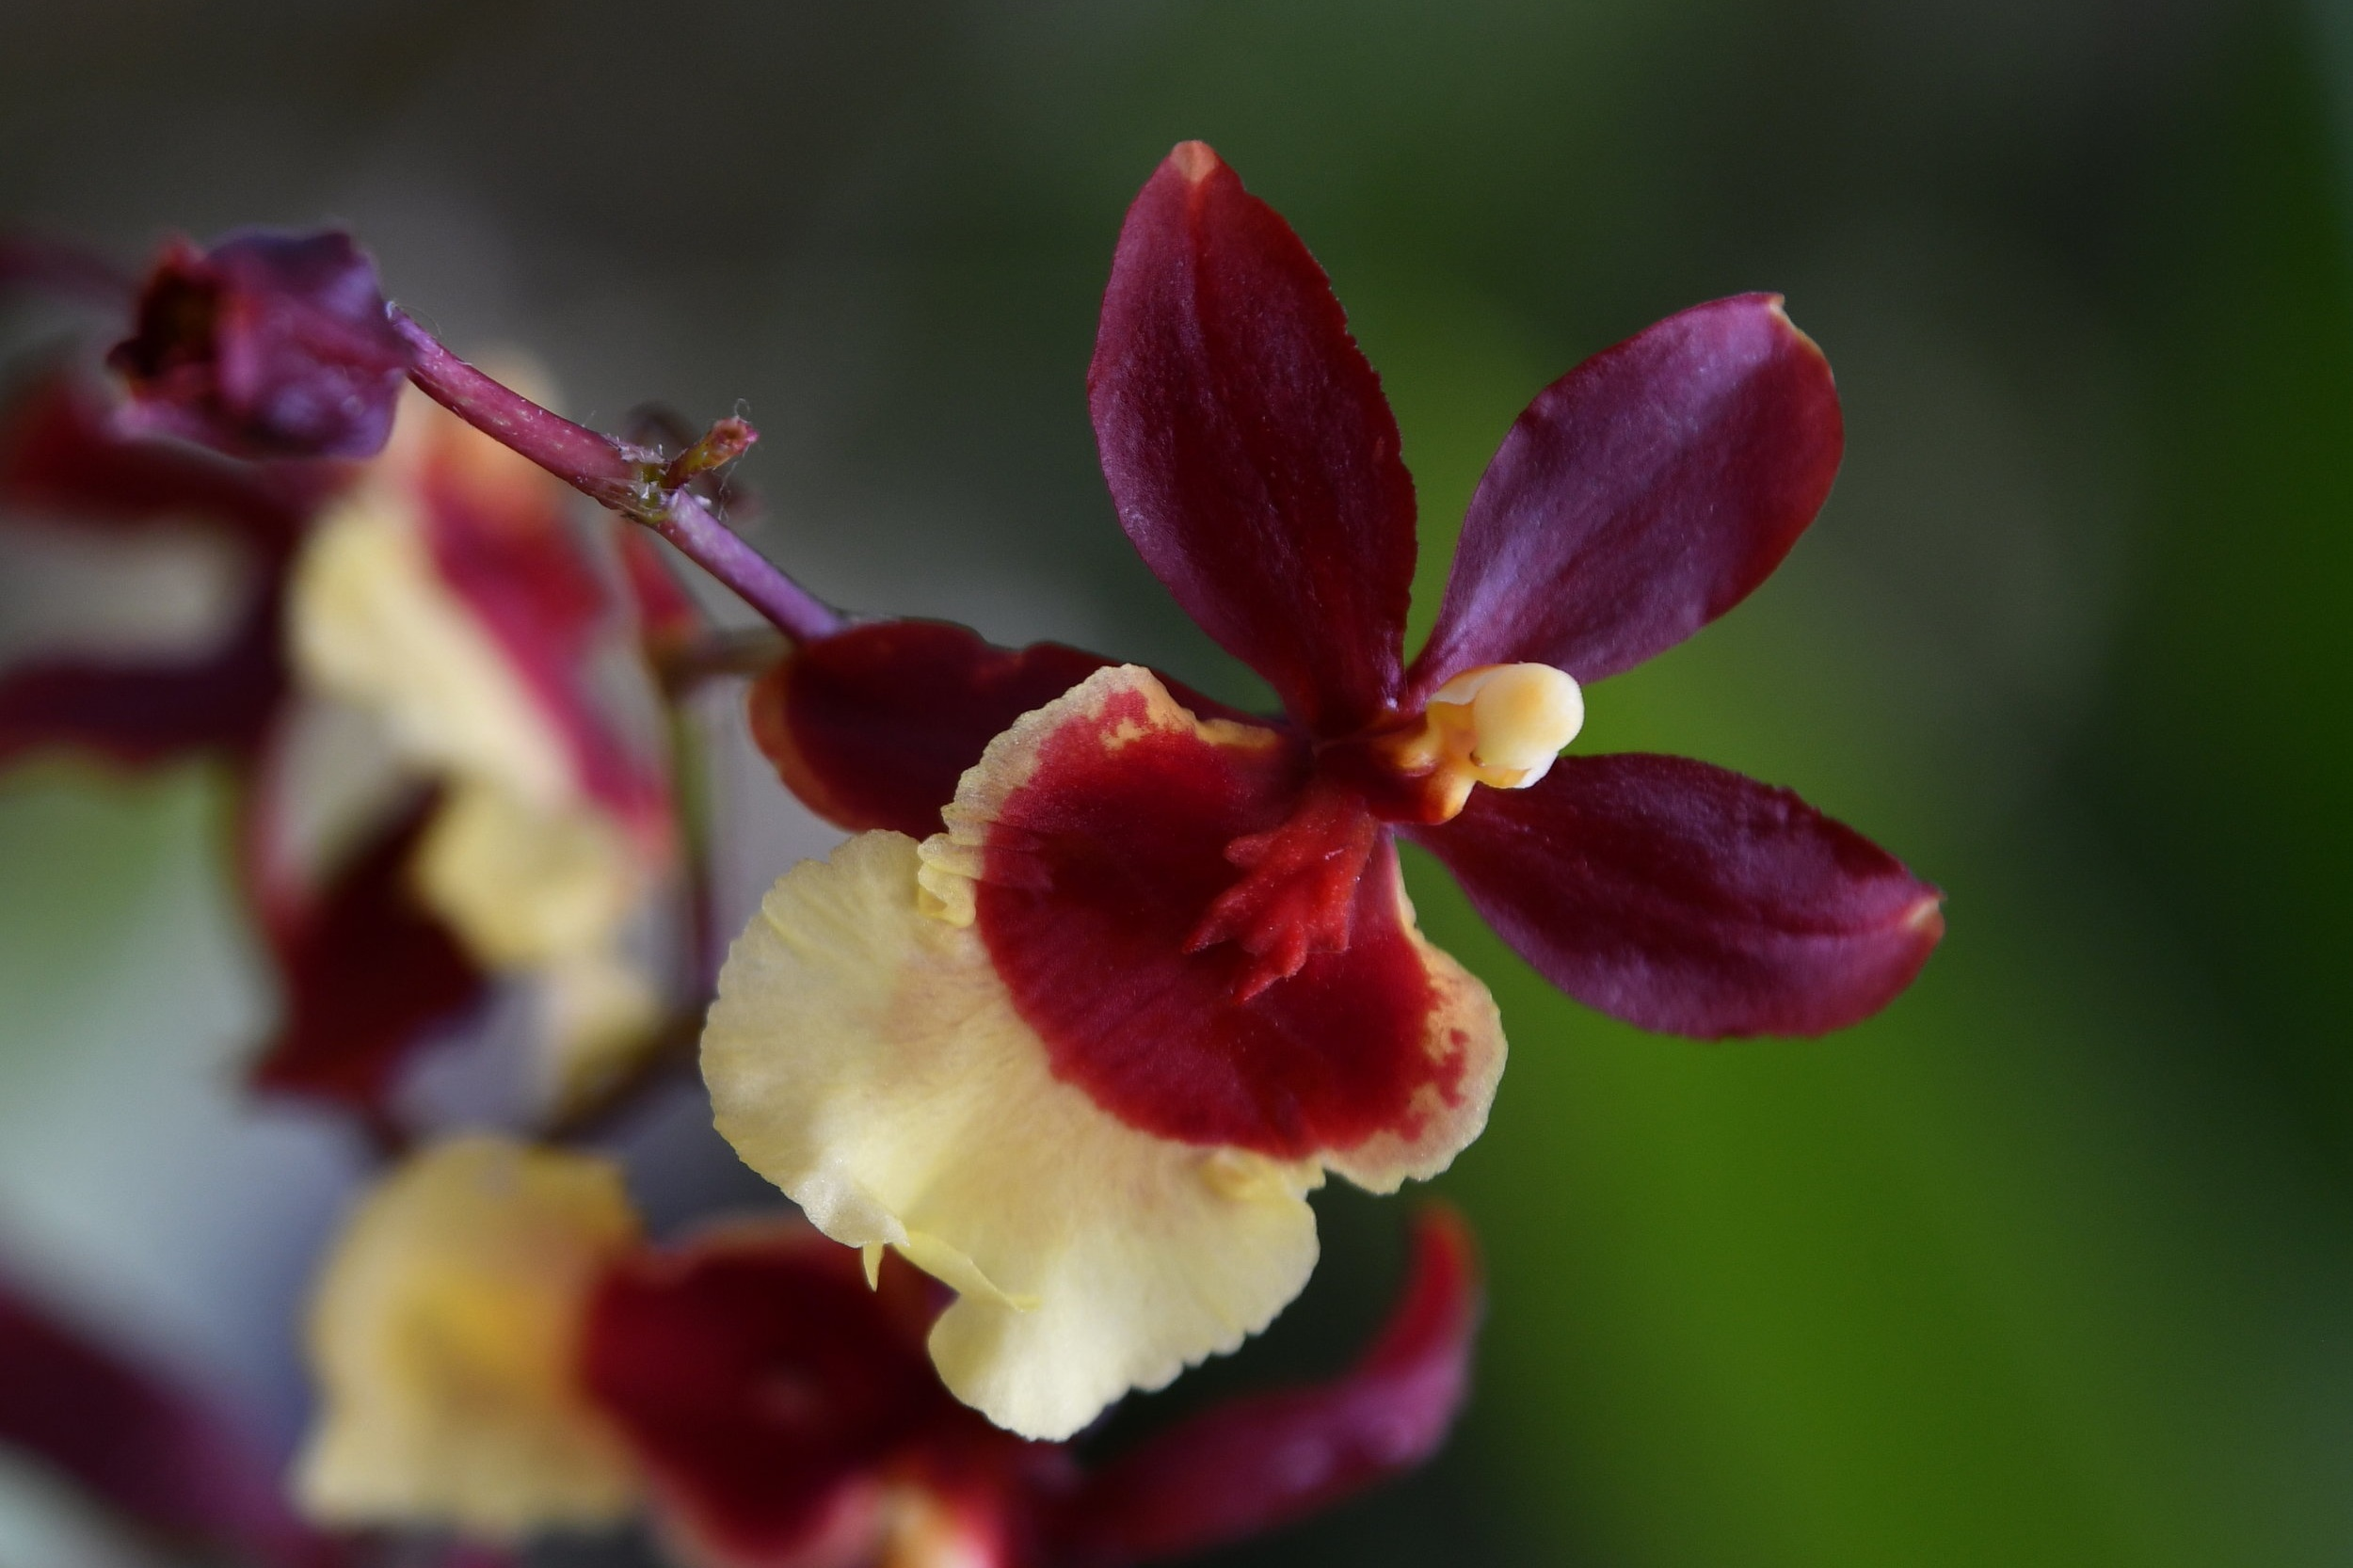 Oncidium - Oncidium come in a plethora of bloom shapes, colors and sizes. Some varieties even have a wonderful fragrance.